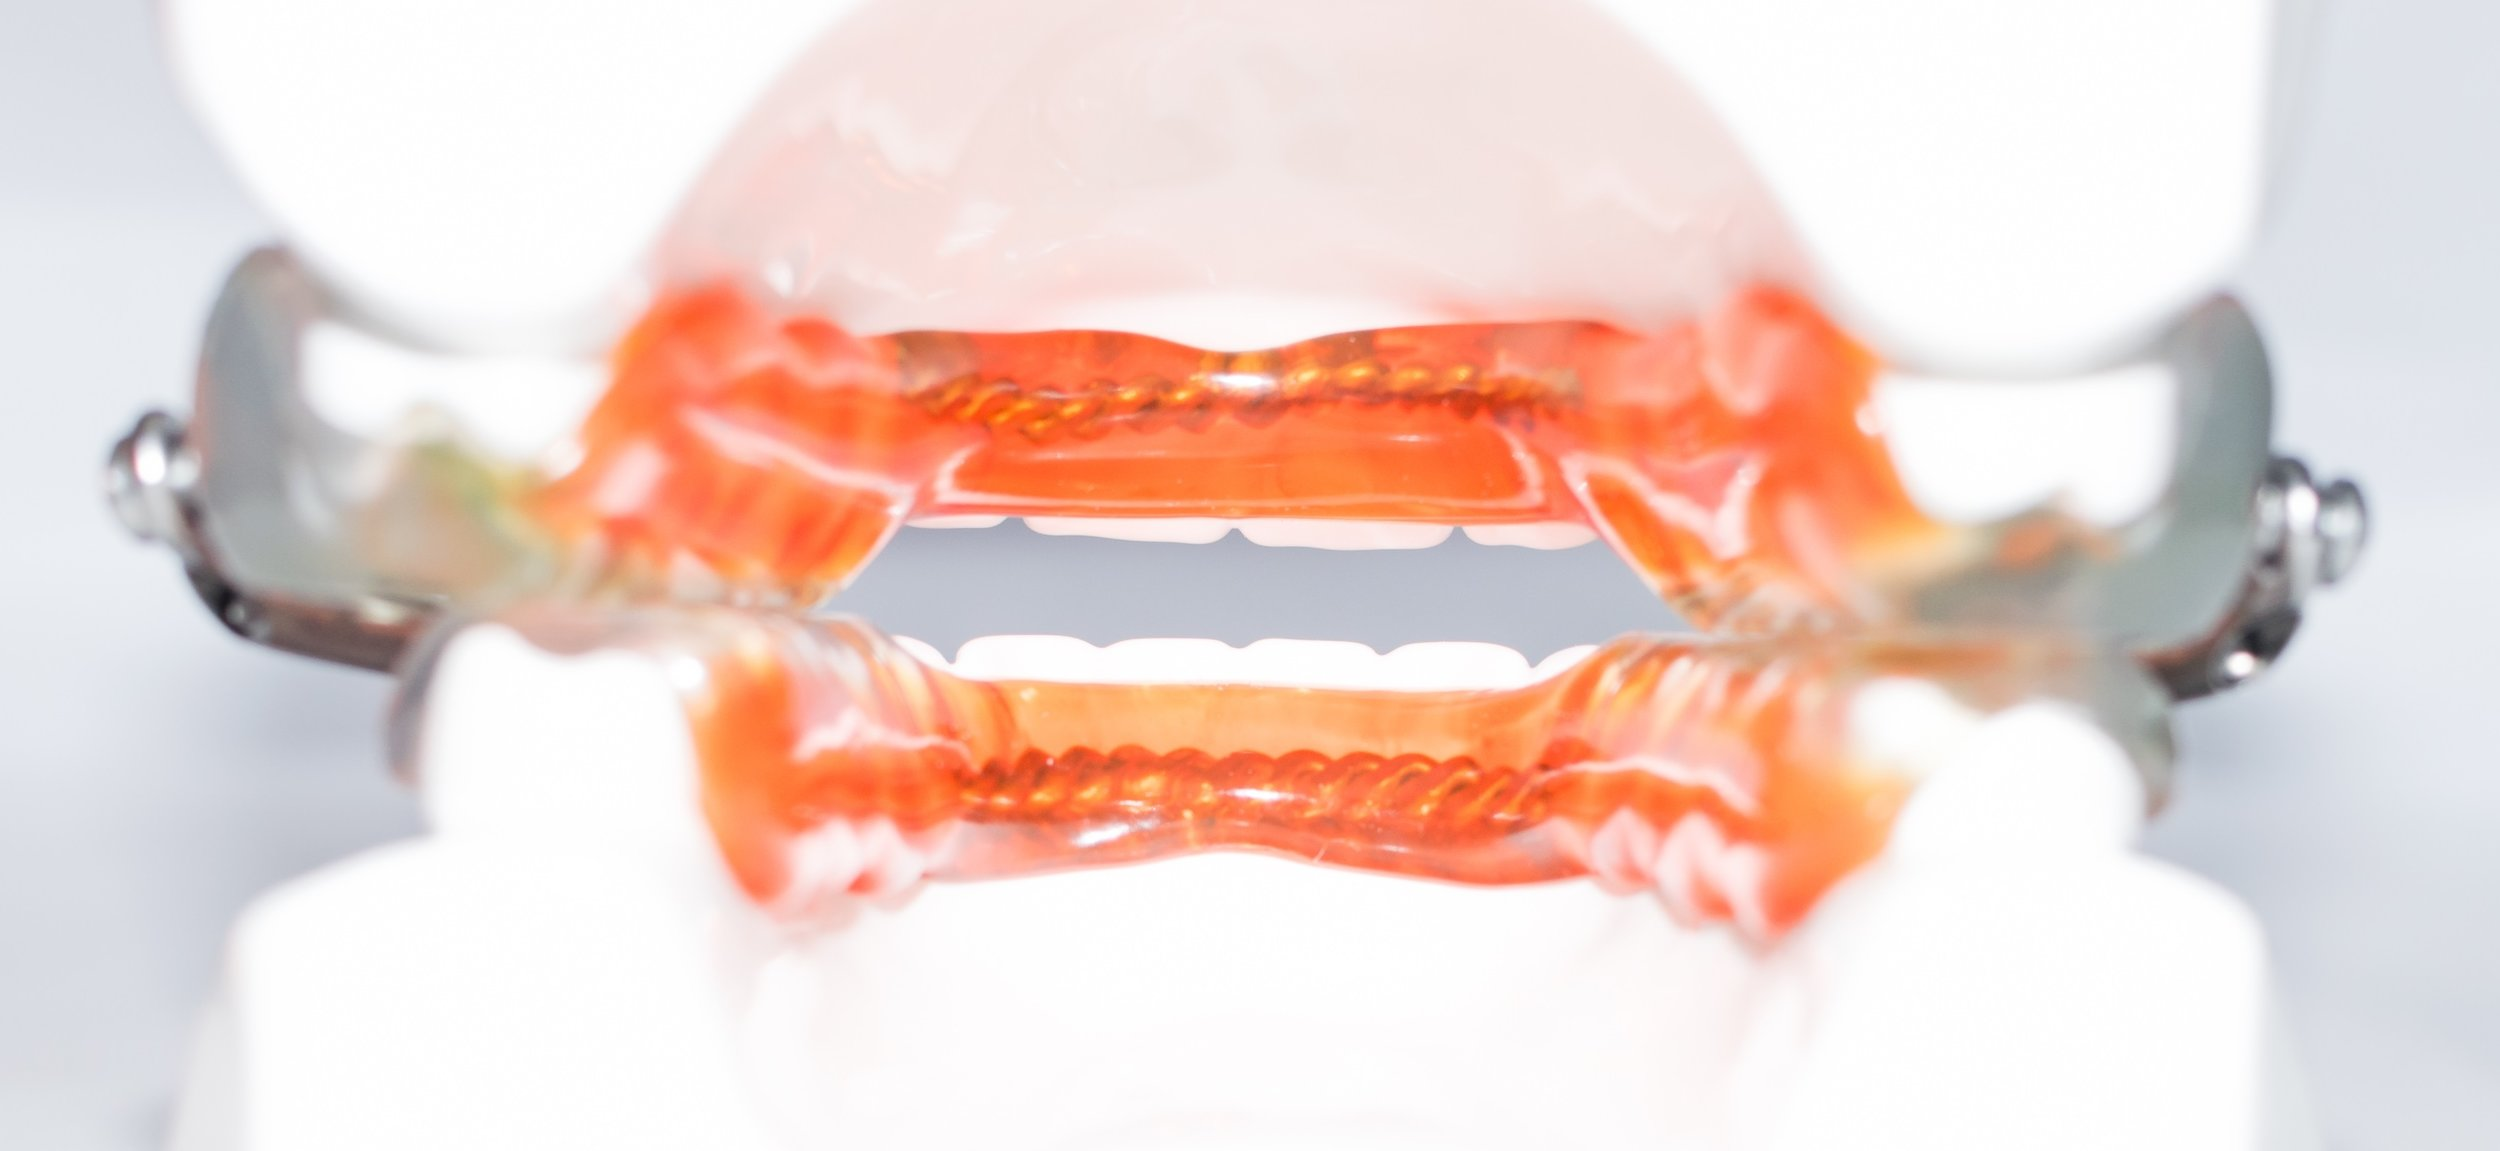 The rear view of the device further illustrates the open anterior. We make sure to keep the lingual areas of the devices as thin as possible, allowing for maximum tongue space and comfort.  Please note the orange shading is for illustration purposes only. All devices are made in clear acrylic.